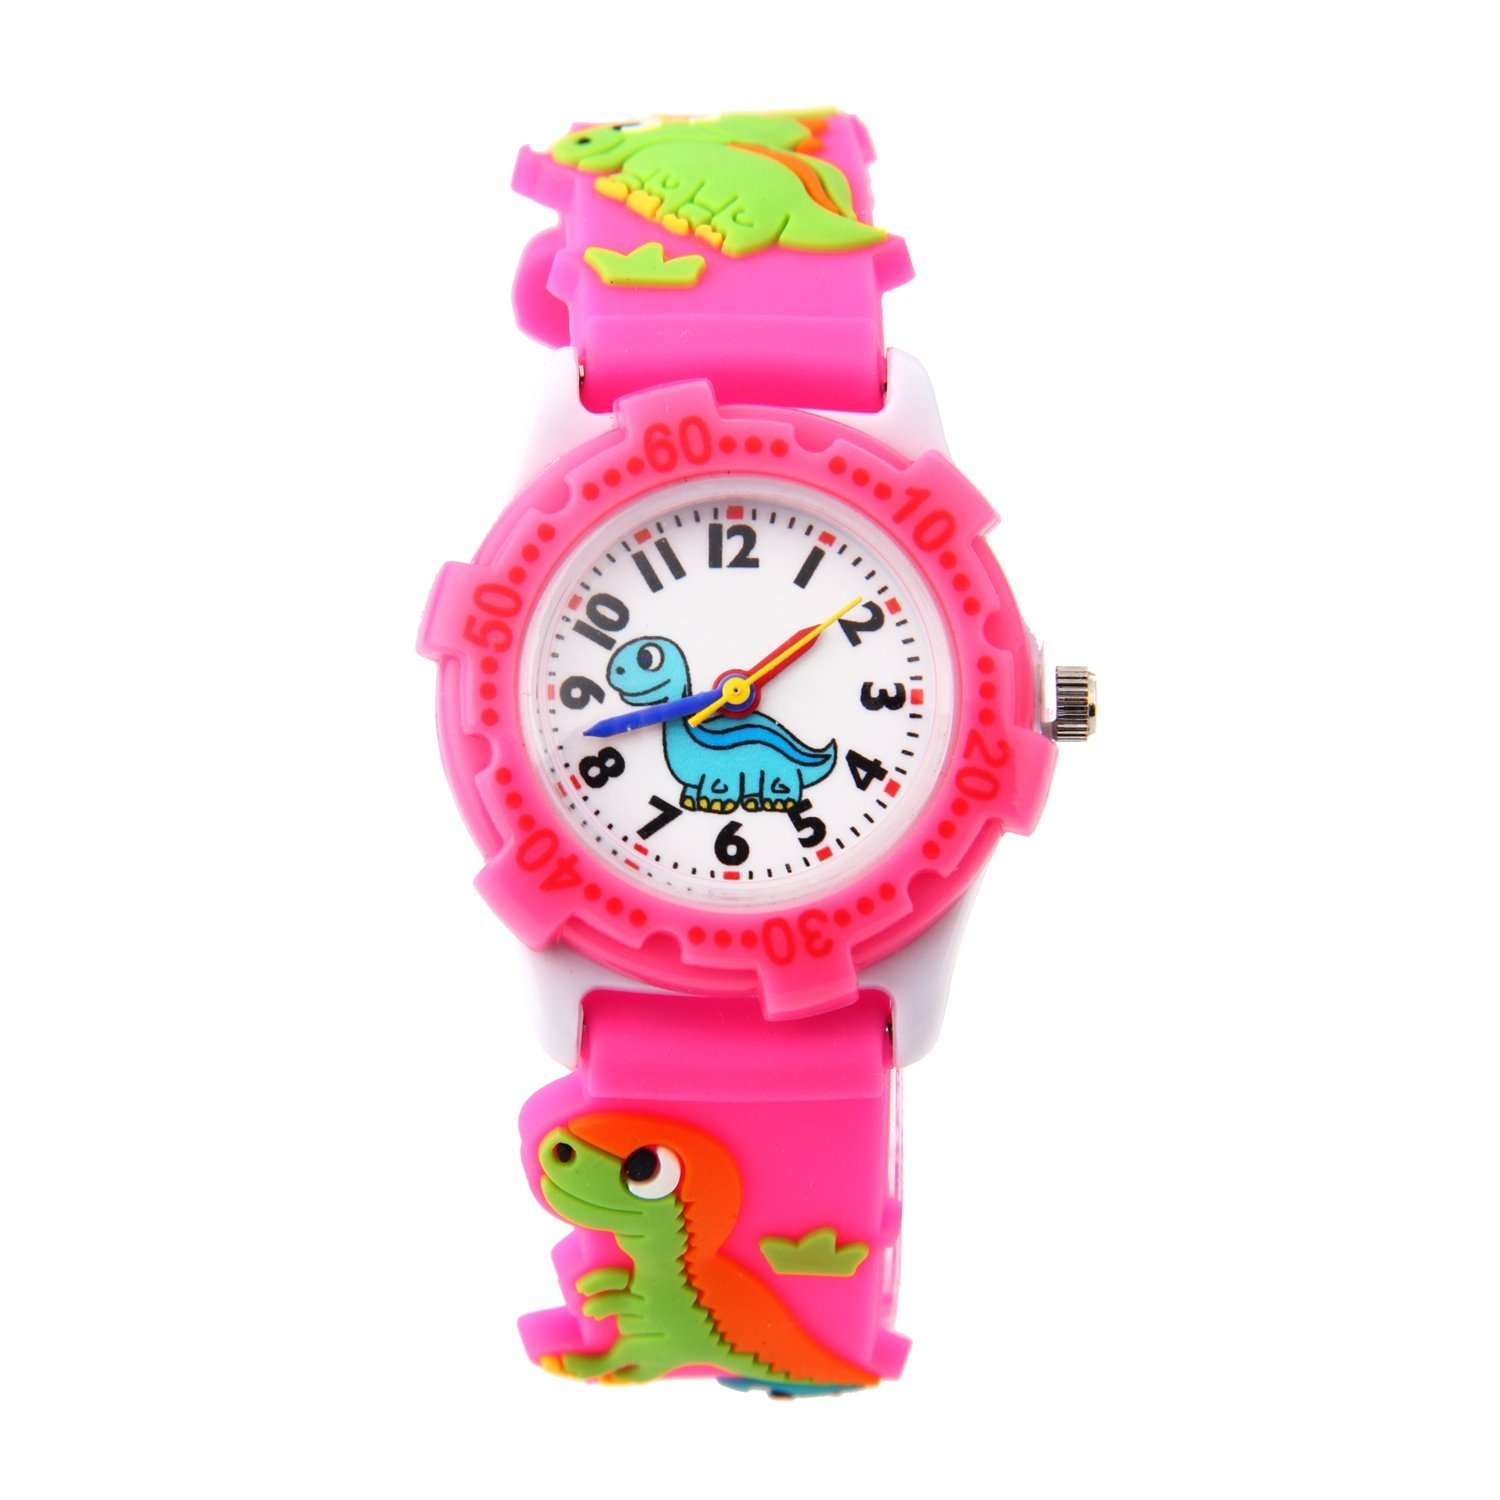 ParaCity Waterproof 3D Cute Cartoon Digital Silicone Wristwatches Time Teacher Gift for Little Girls Boy Kids Children (Dinosaur-Pink)